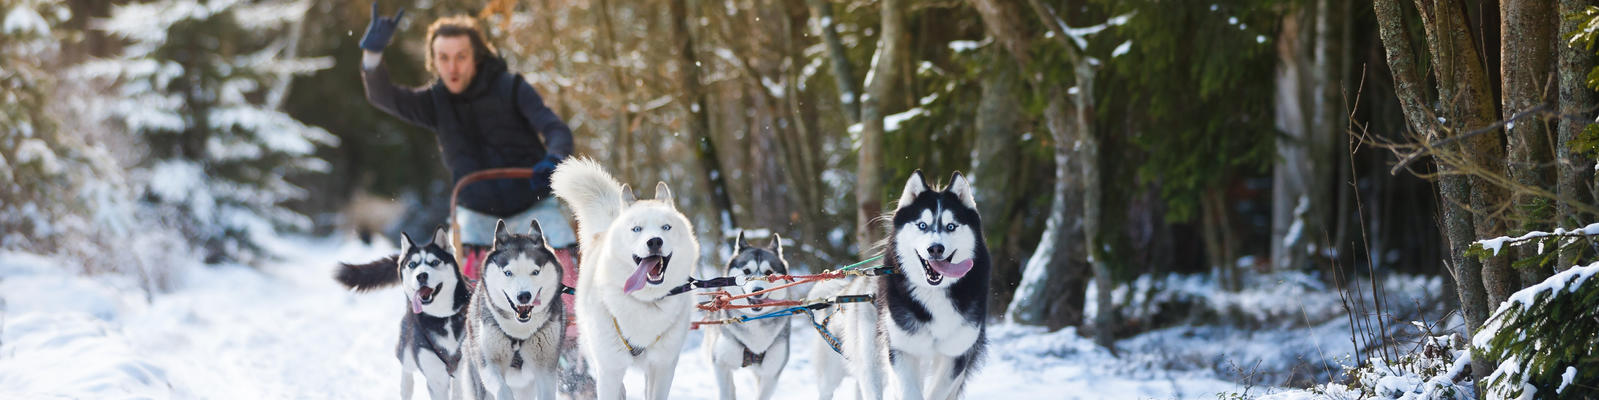 We Try It: Husky Sledding on a Norway Cruise (Photo: Konstantin Tronin/Shutterstock.com)